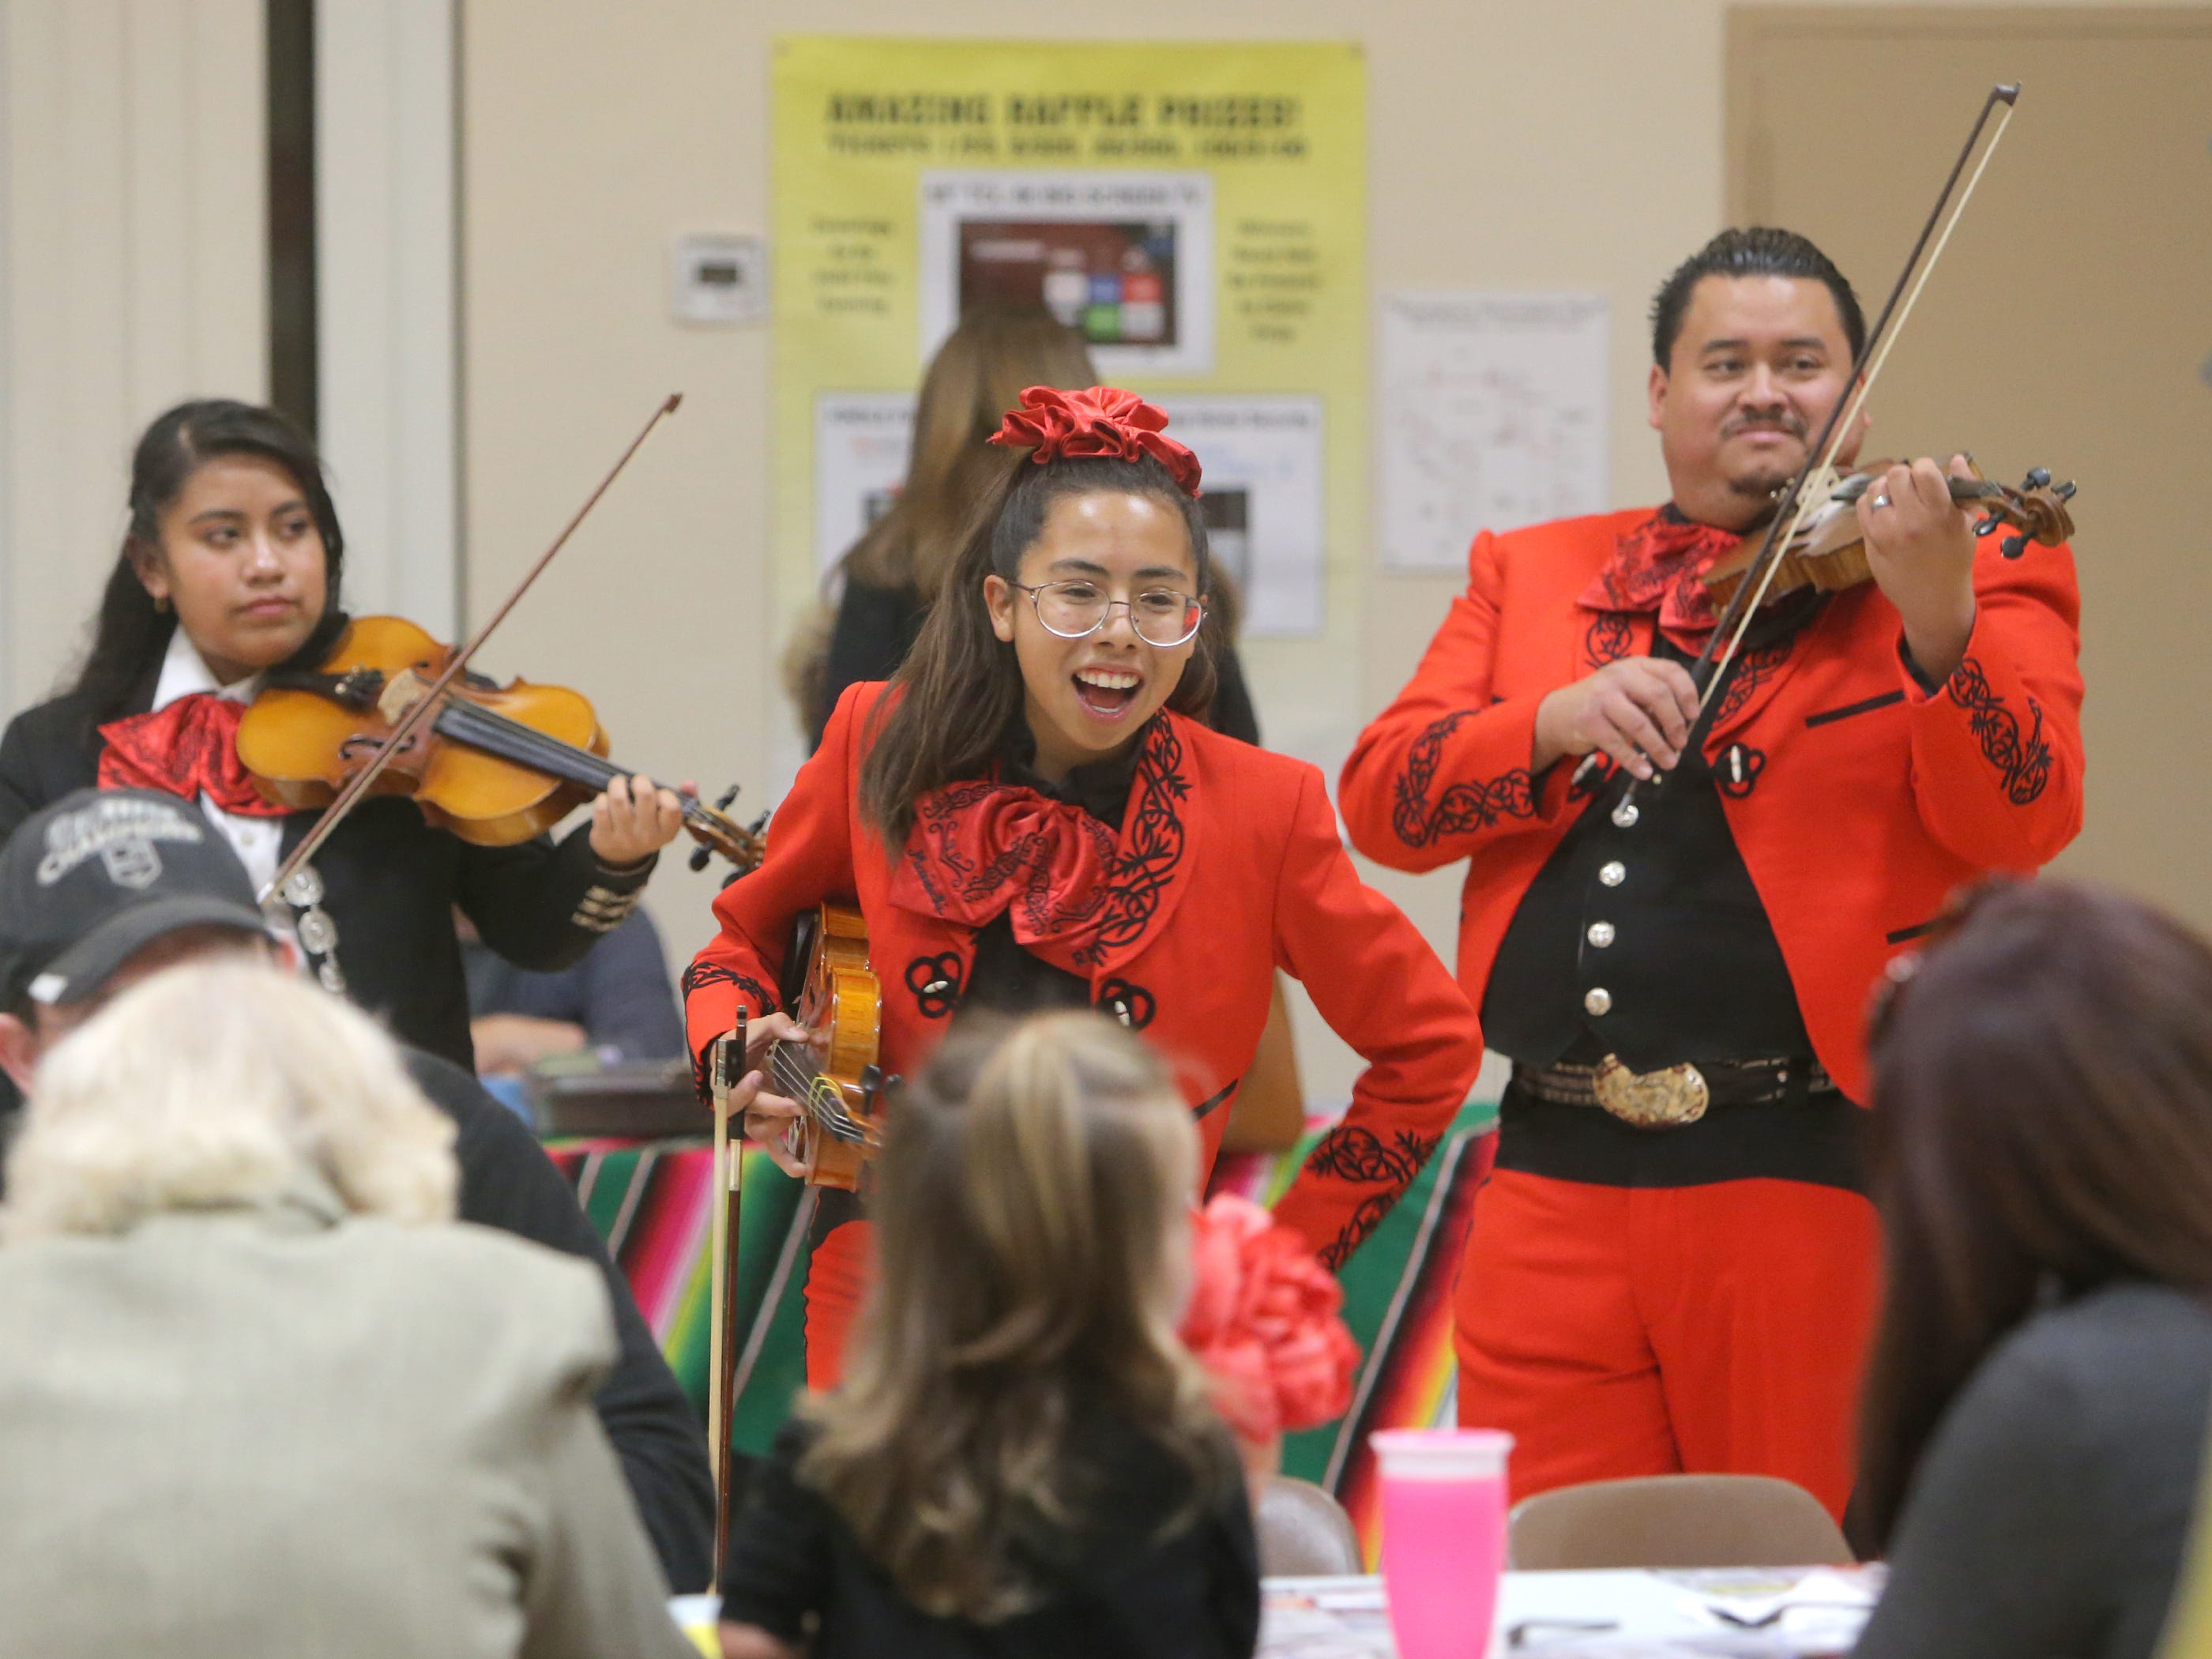 Rio Mesa High School's Brisa Garcia, center, entertains guests with her teacher Dominic Rivera, right, and some of her schoolmates during the annual Viva la Comida fundraiser Monday at the Camarillo Community Center. Garcia is a member of the school's mariachi class.